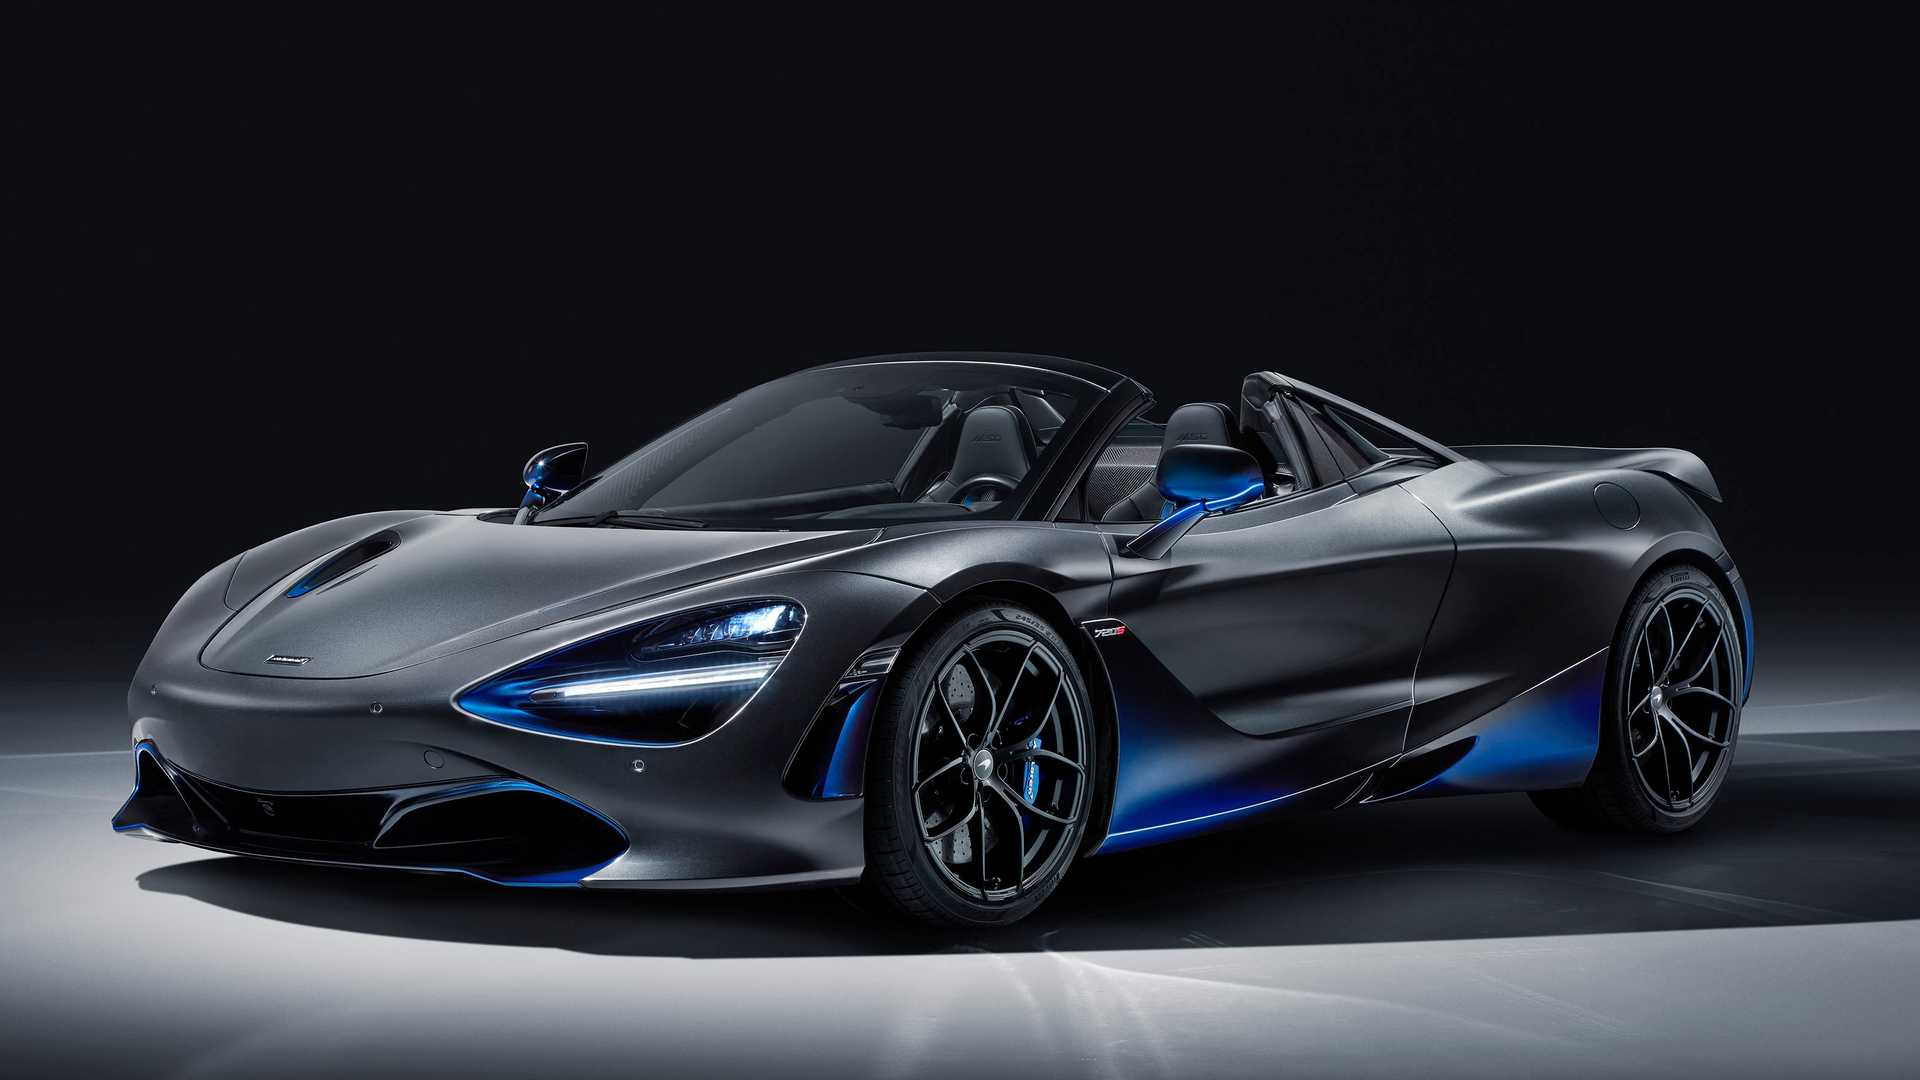 mclaren-720s-spider-by-mso (8)